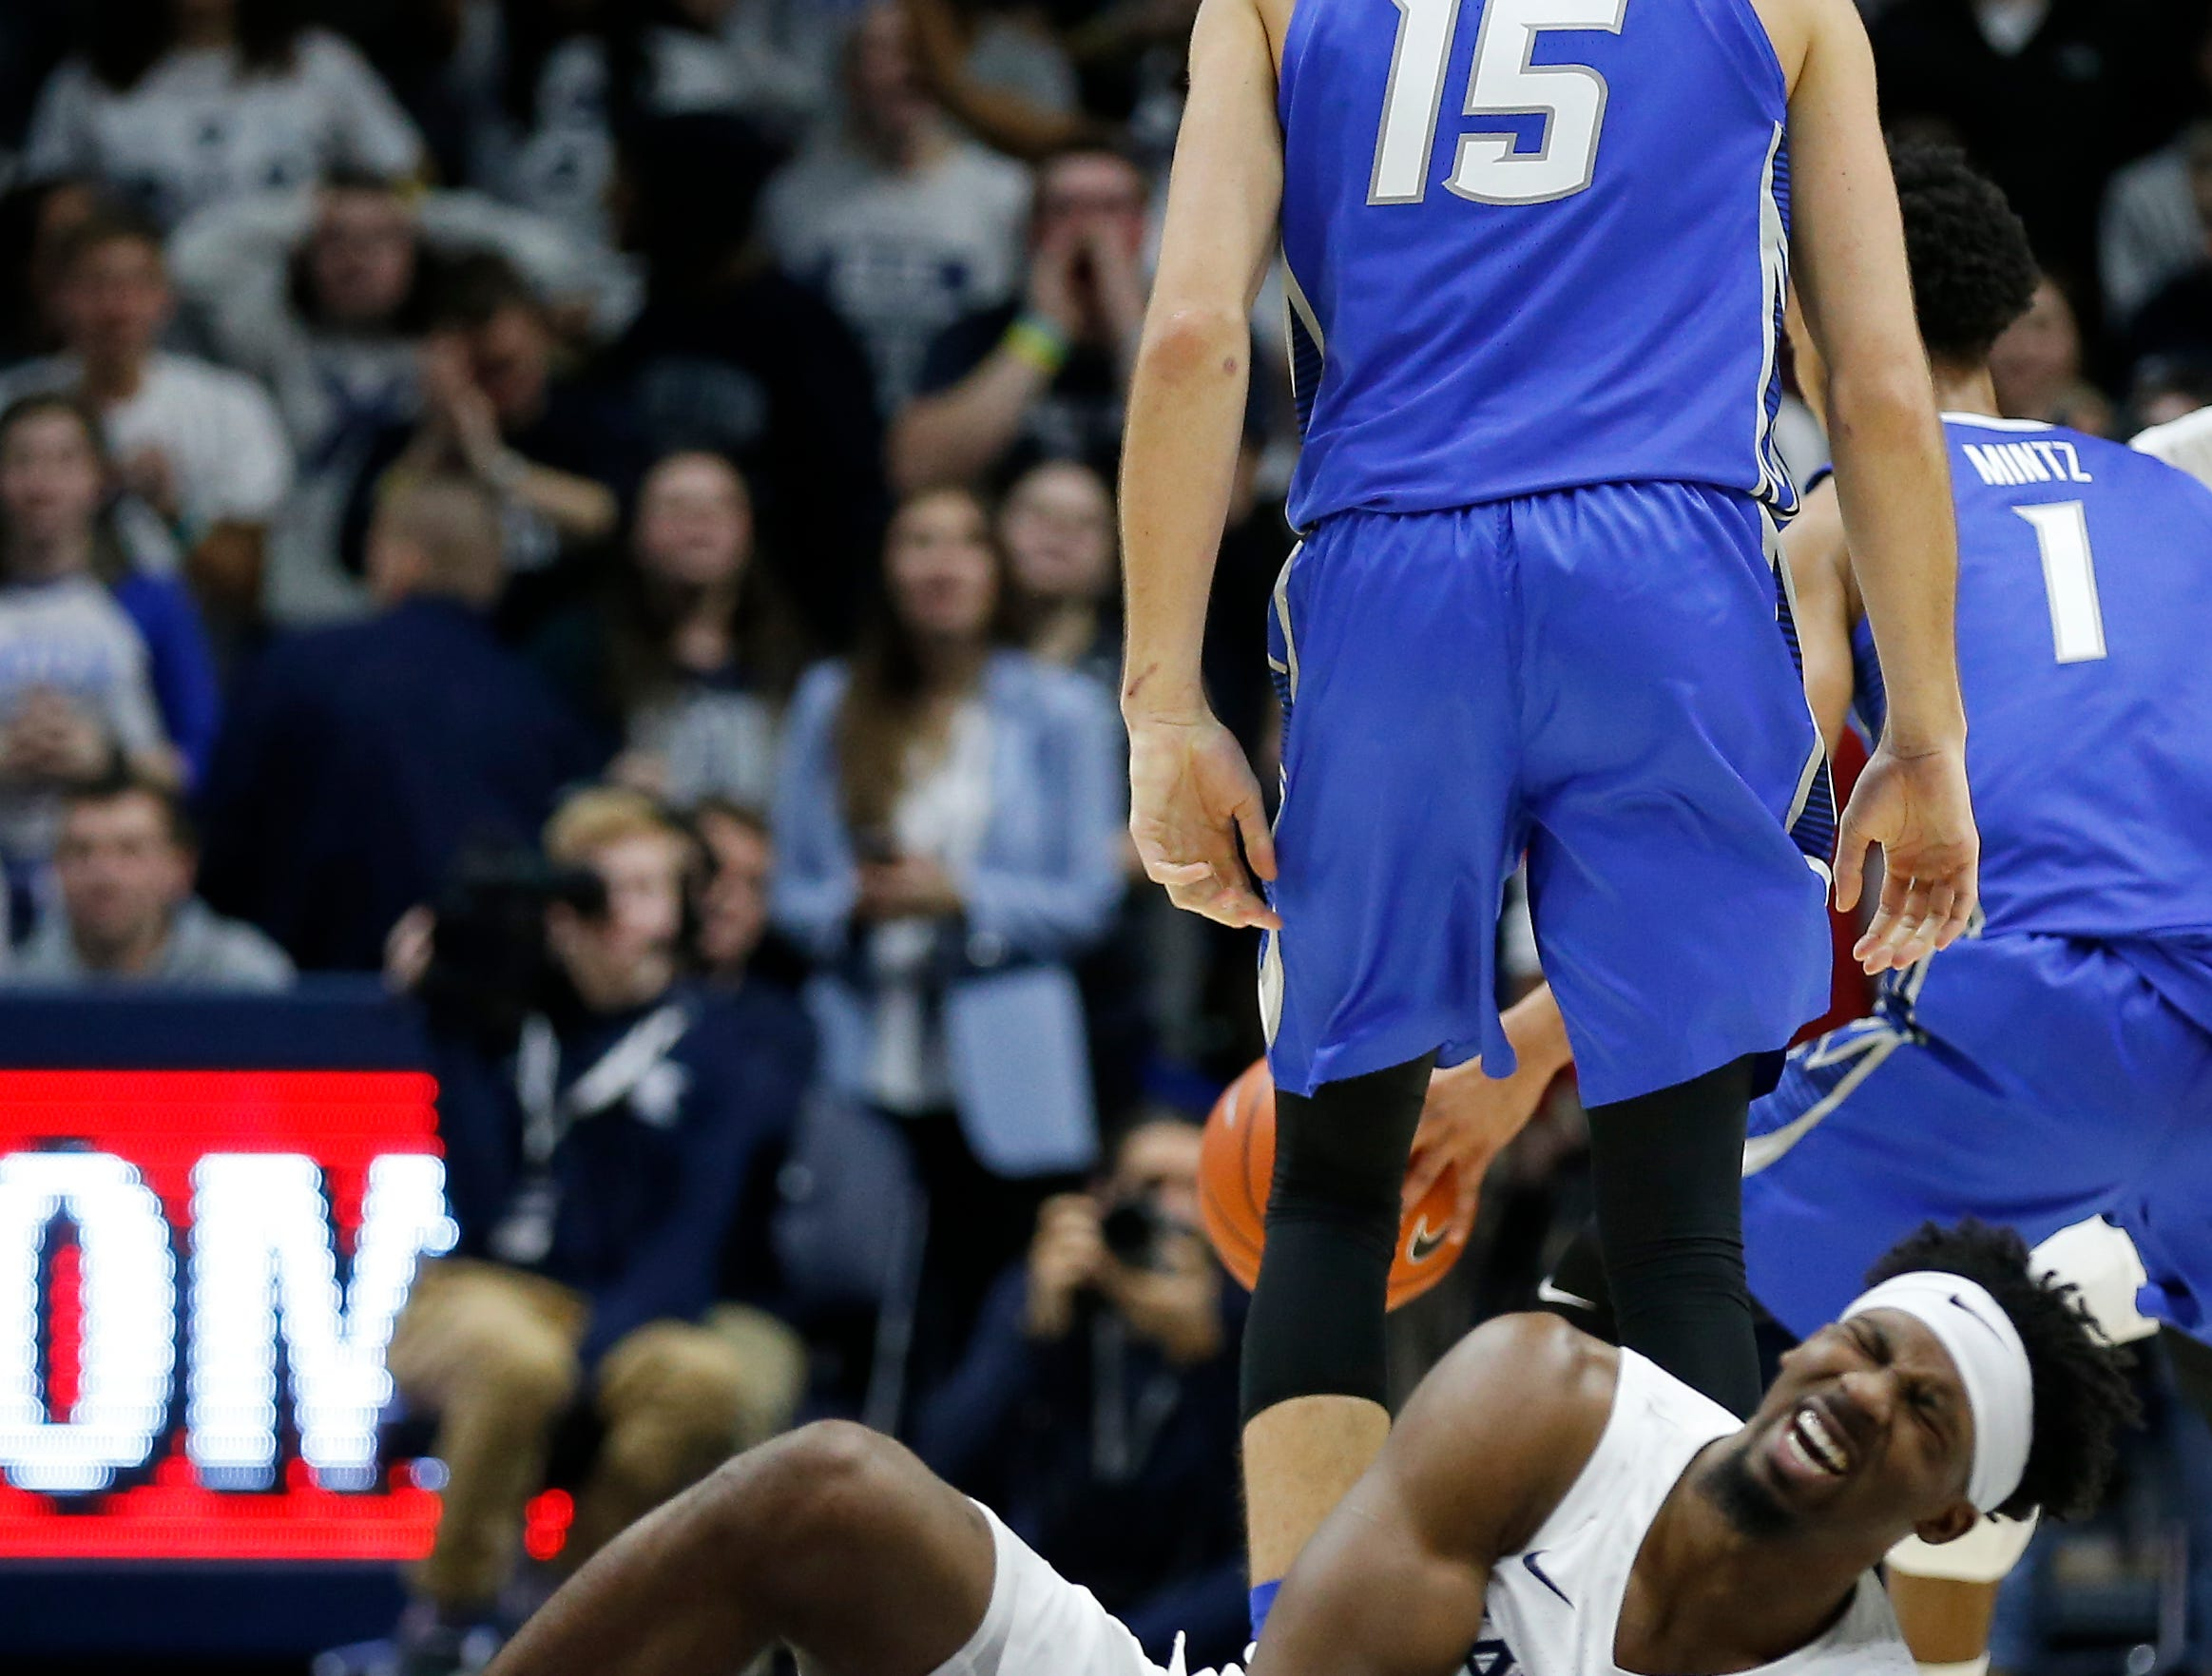 Xavier Musketeers guard Quentin Goodin (3) falls to the ground after colliding with a pick set by Creighton Bluejays forward Martin Krampelj (15) in the second half of the NCAA Big East Conference basketball game between the Xavier Musketeers and the Creighton Bluejays at Xavier's Cintas Center in Cincinnati on Thursday, Feb. 14, 2019. Xavier broke a 6-game losing streak with a 64-61 overtime win over Creighton.